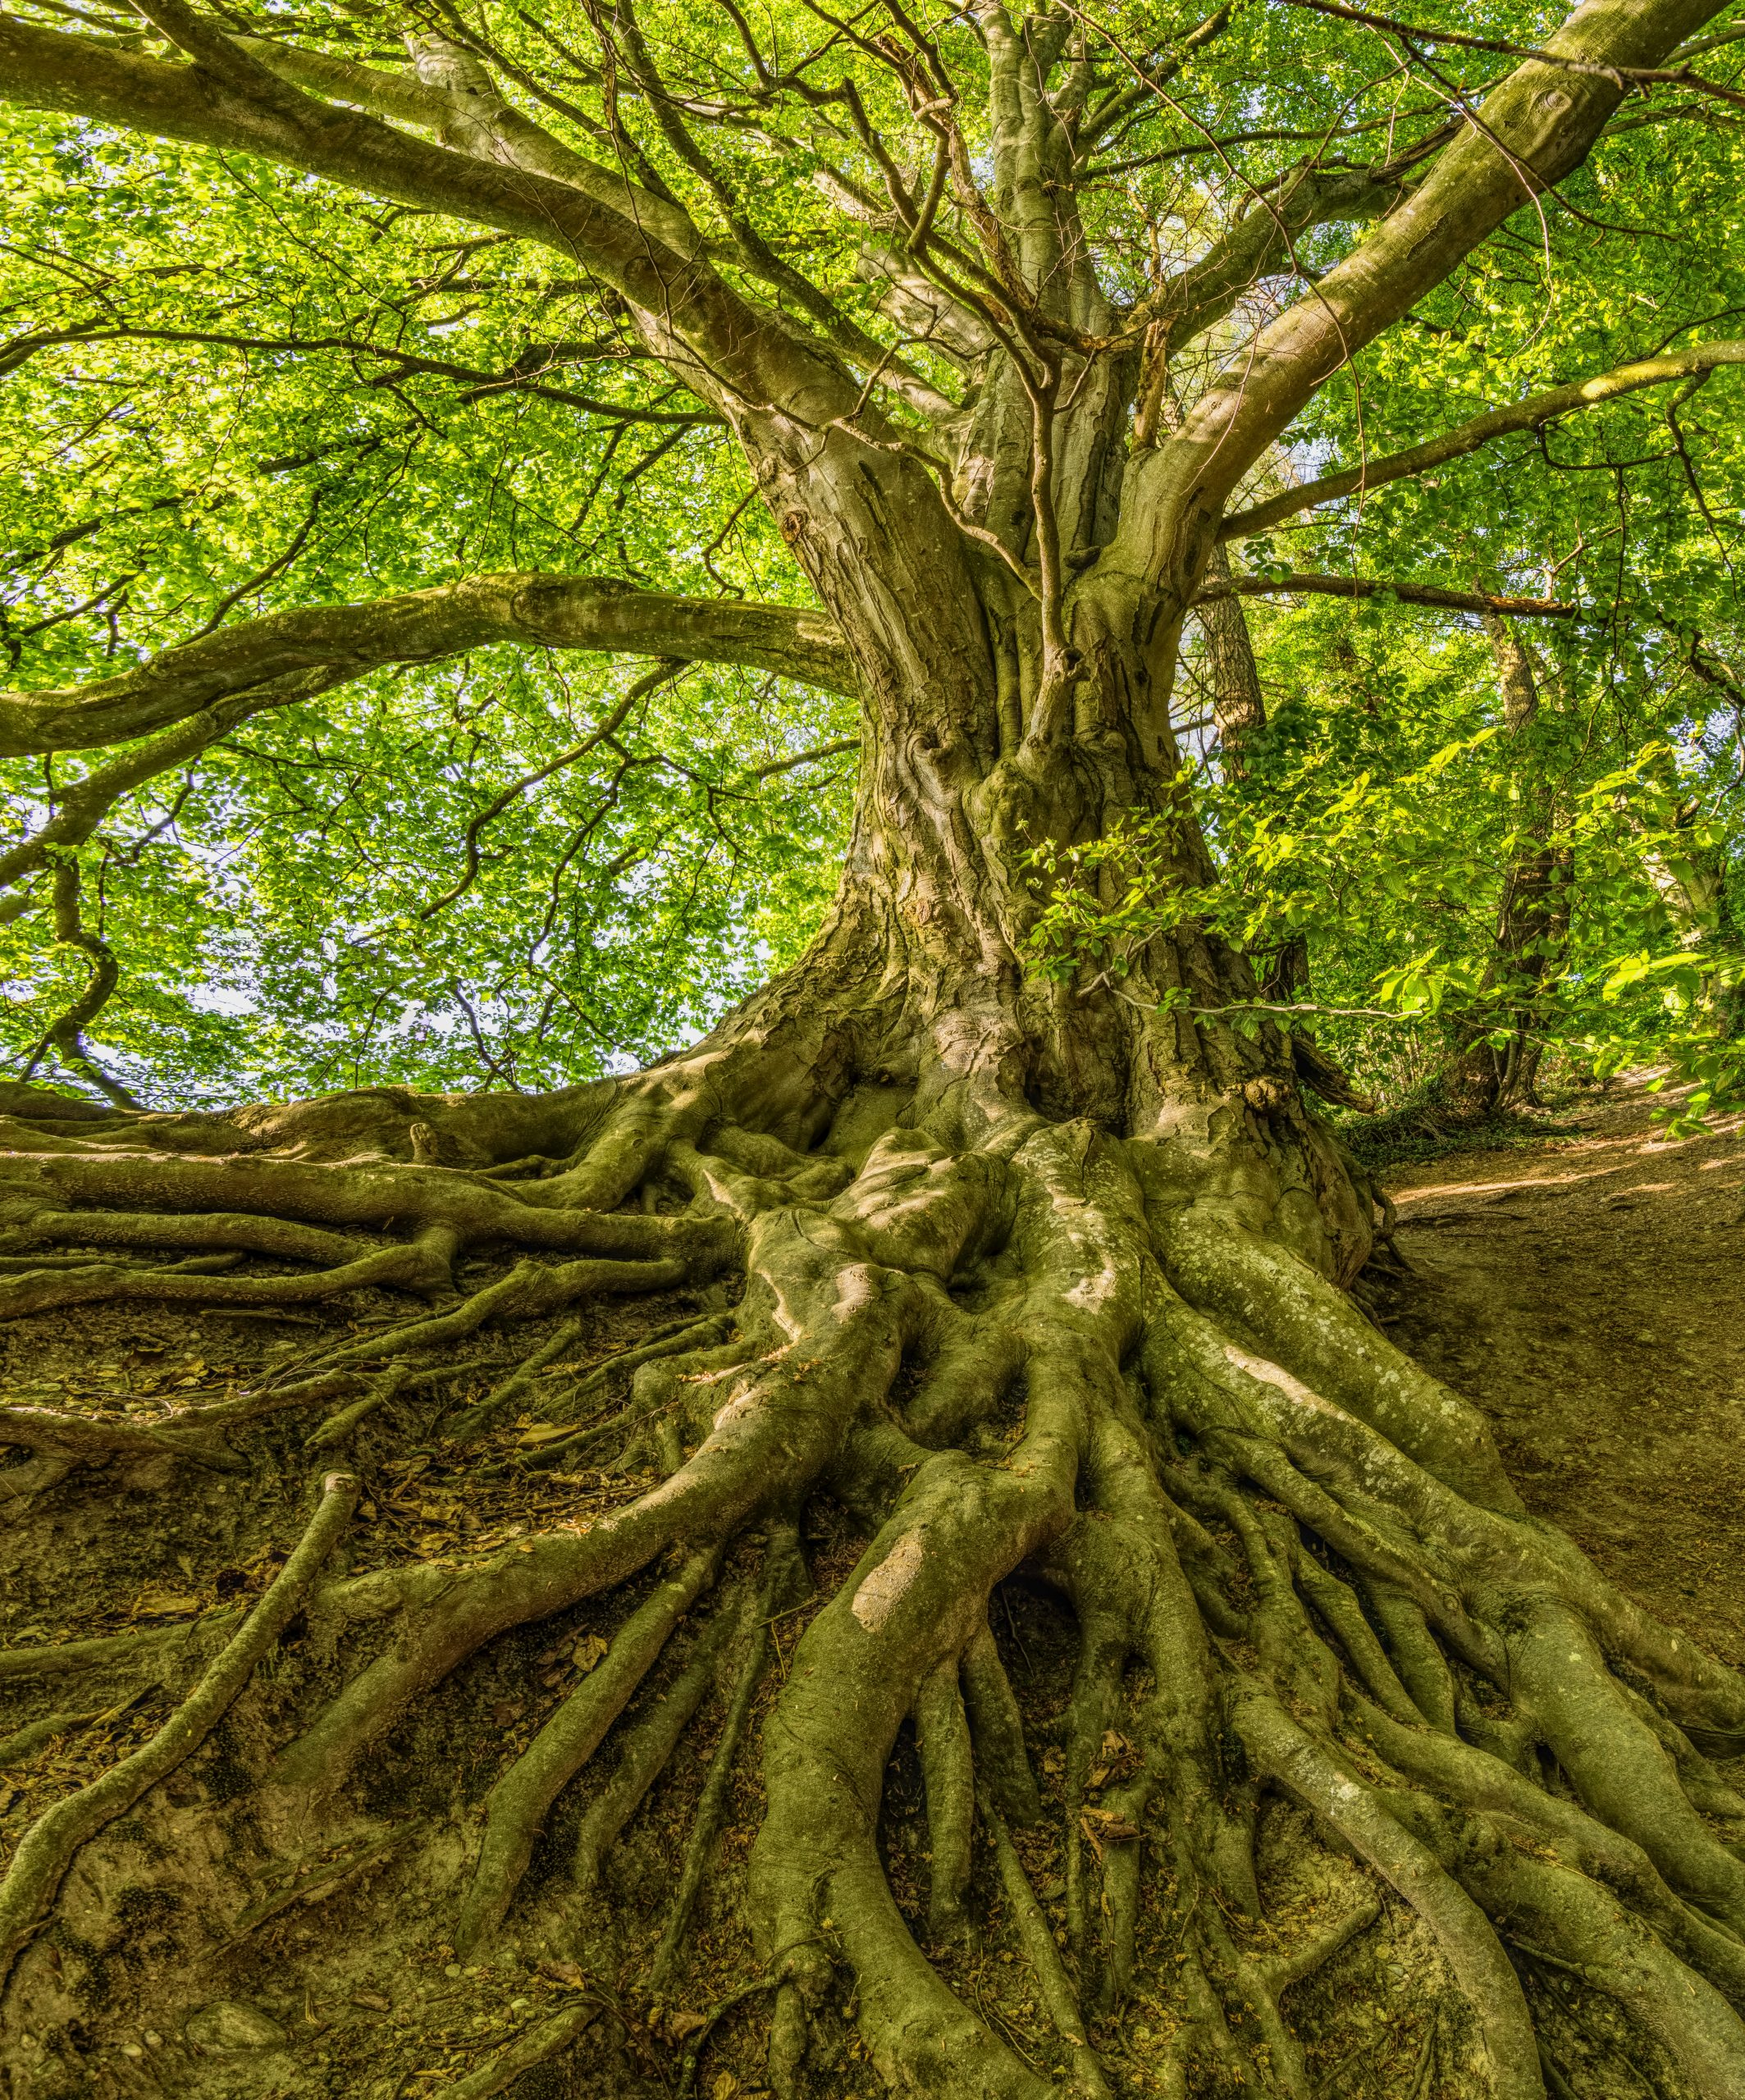 how much dna do humans share with trees